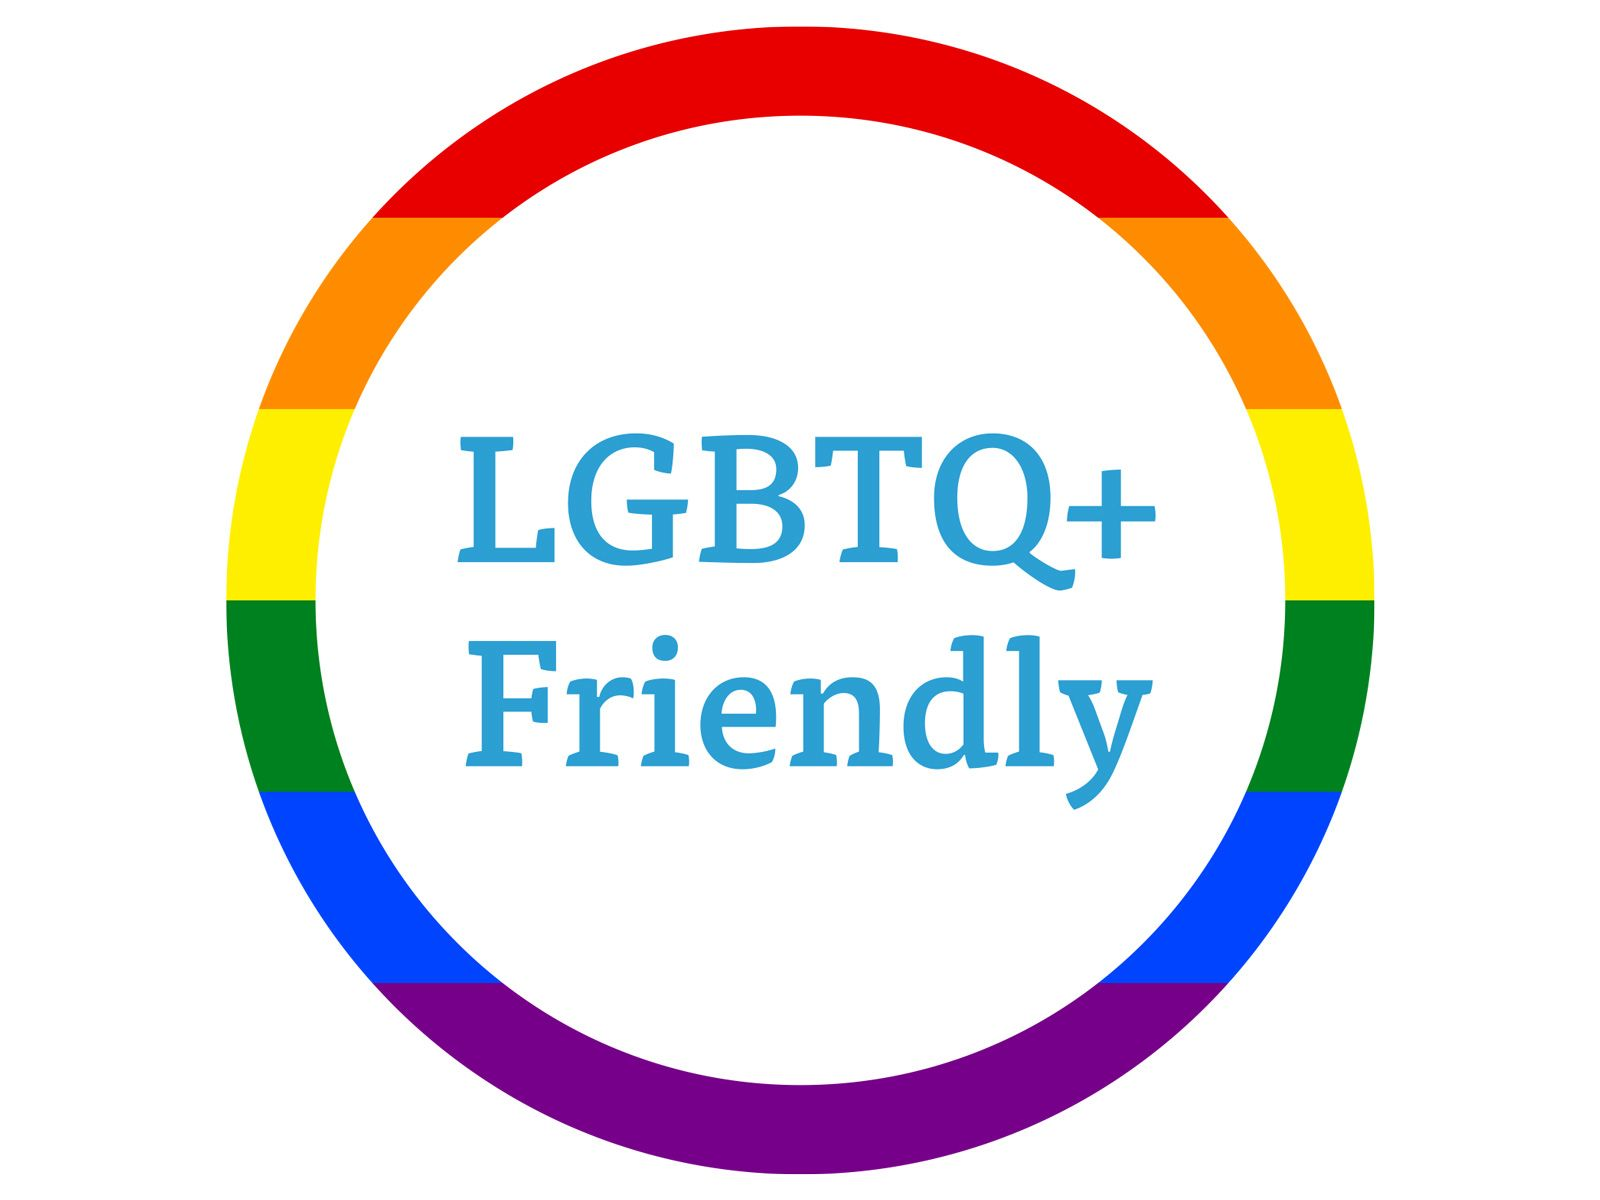 lgbtq+ friendly badge.jpg